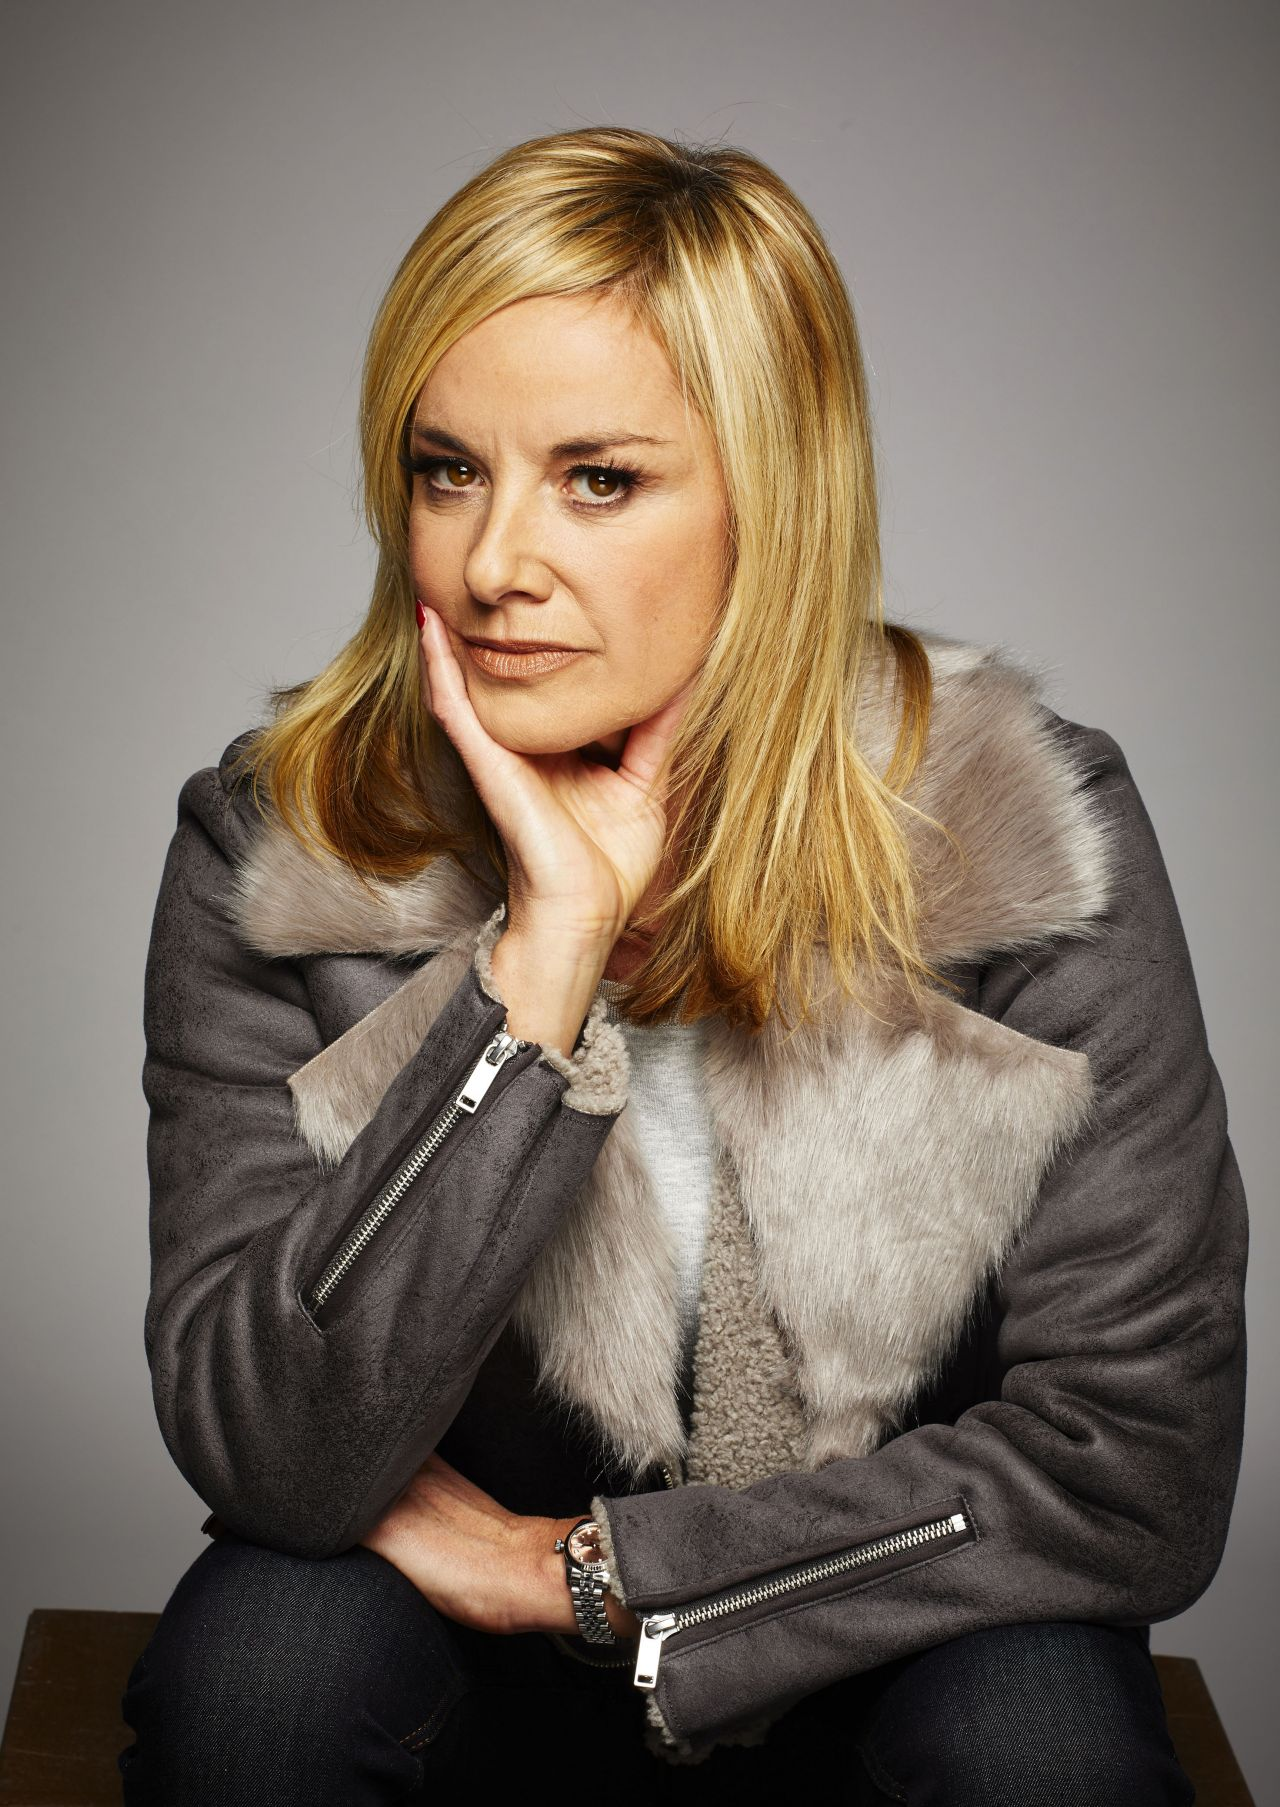 tamzin outhwaite - photo #9